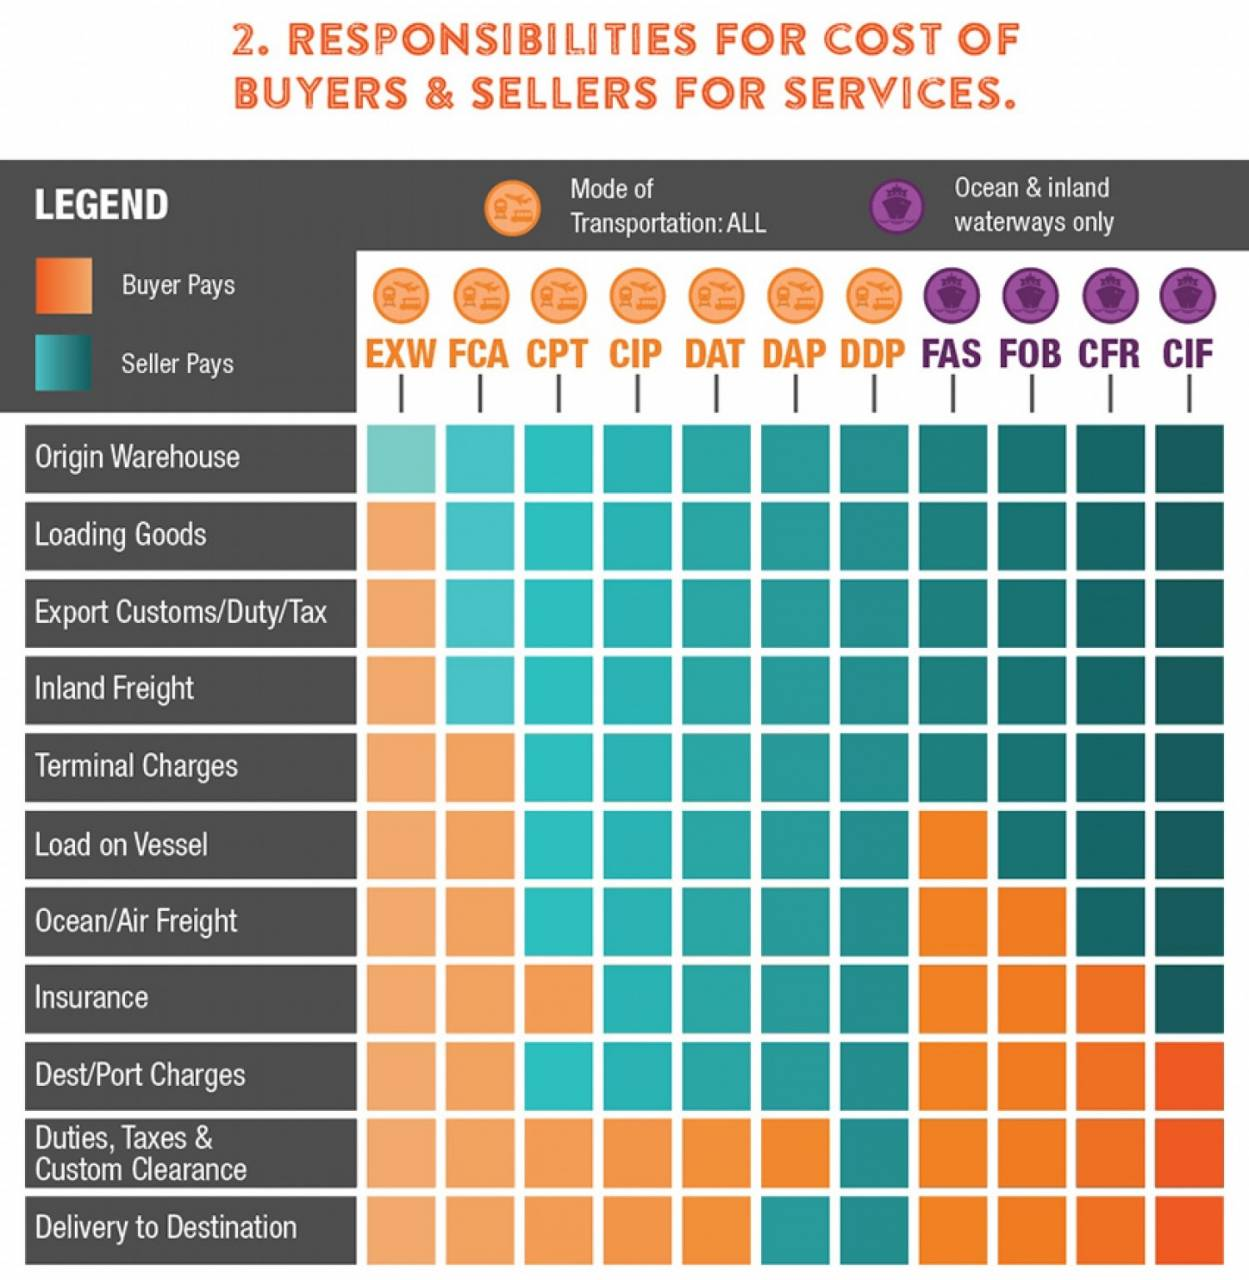 International commerce terms - responsibilities for the cost of buyers and sellers for services infographic